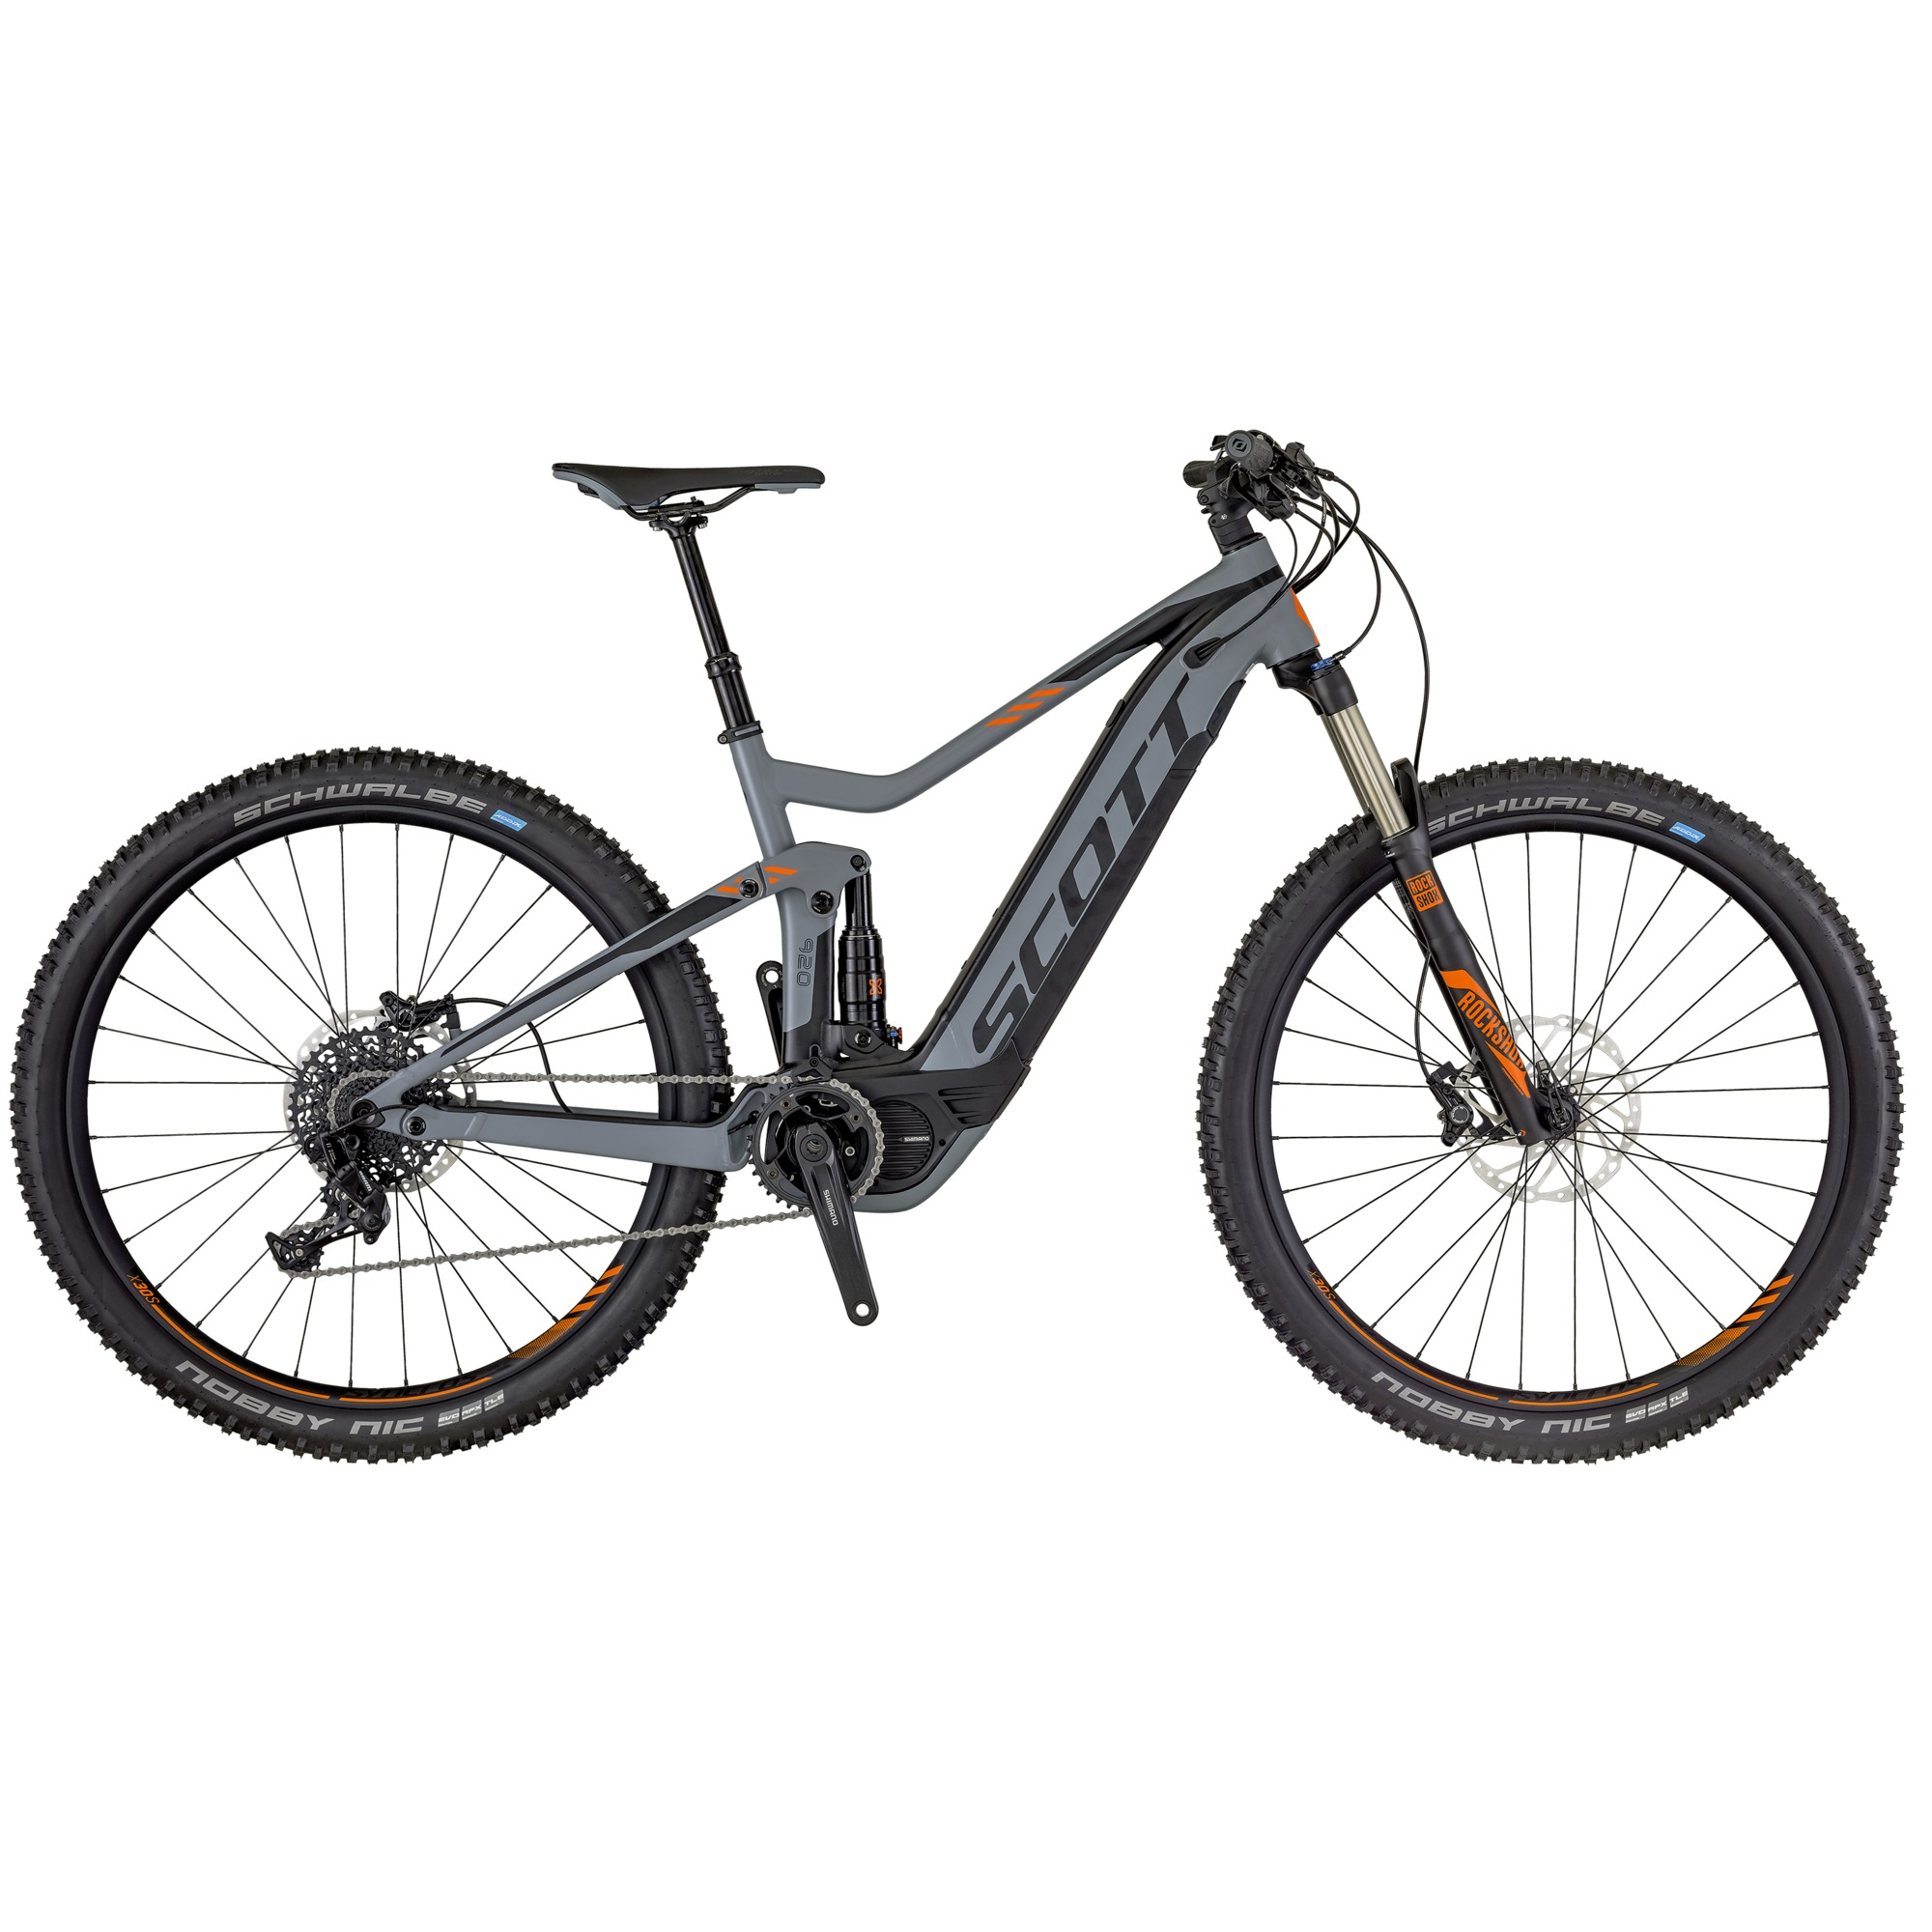 SCOTT E-Genius 920 Bike M - Zweirad Homann